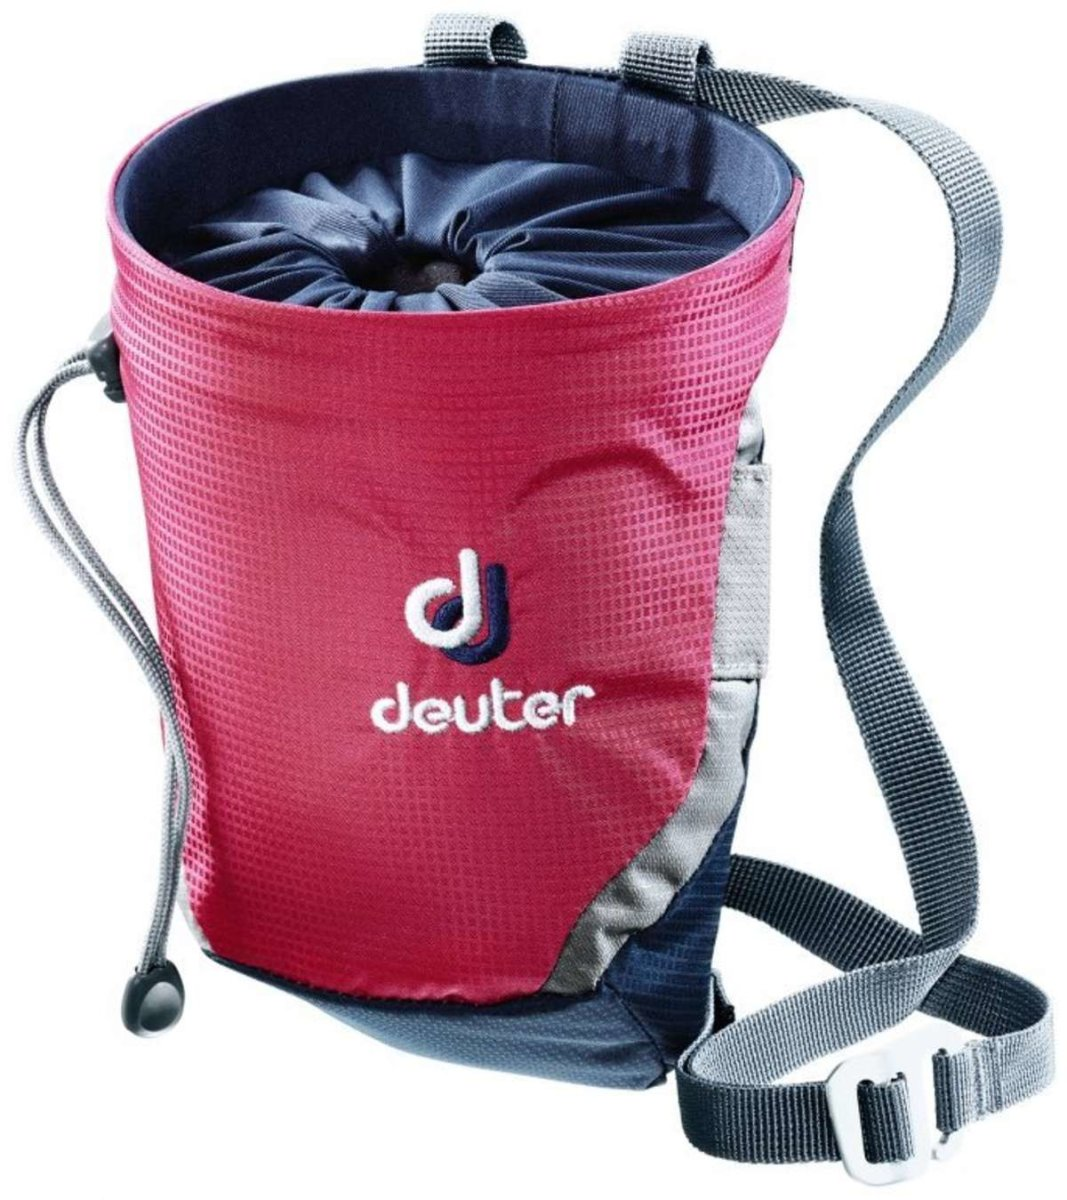 Мешочек для магнезии Deuter Gravity Chalk Bag II M magenta-navy (5313) 3391217 5313